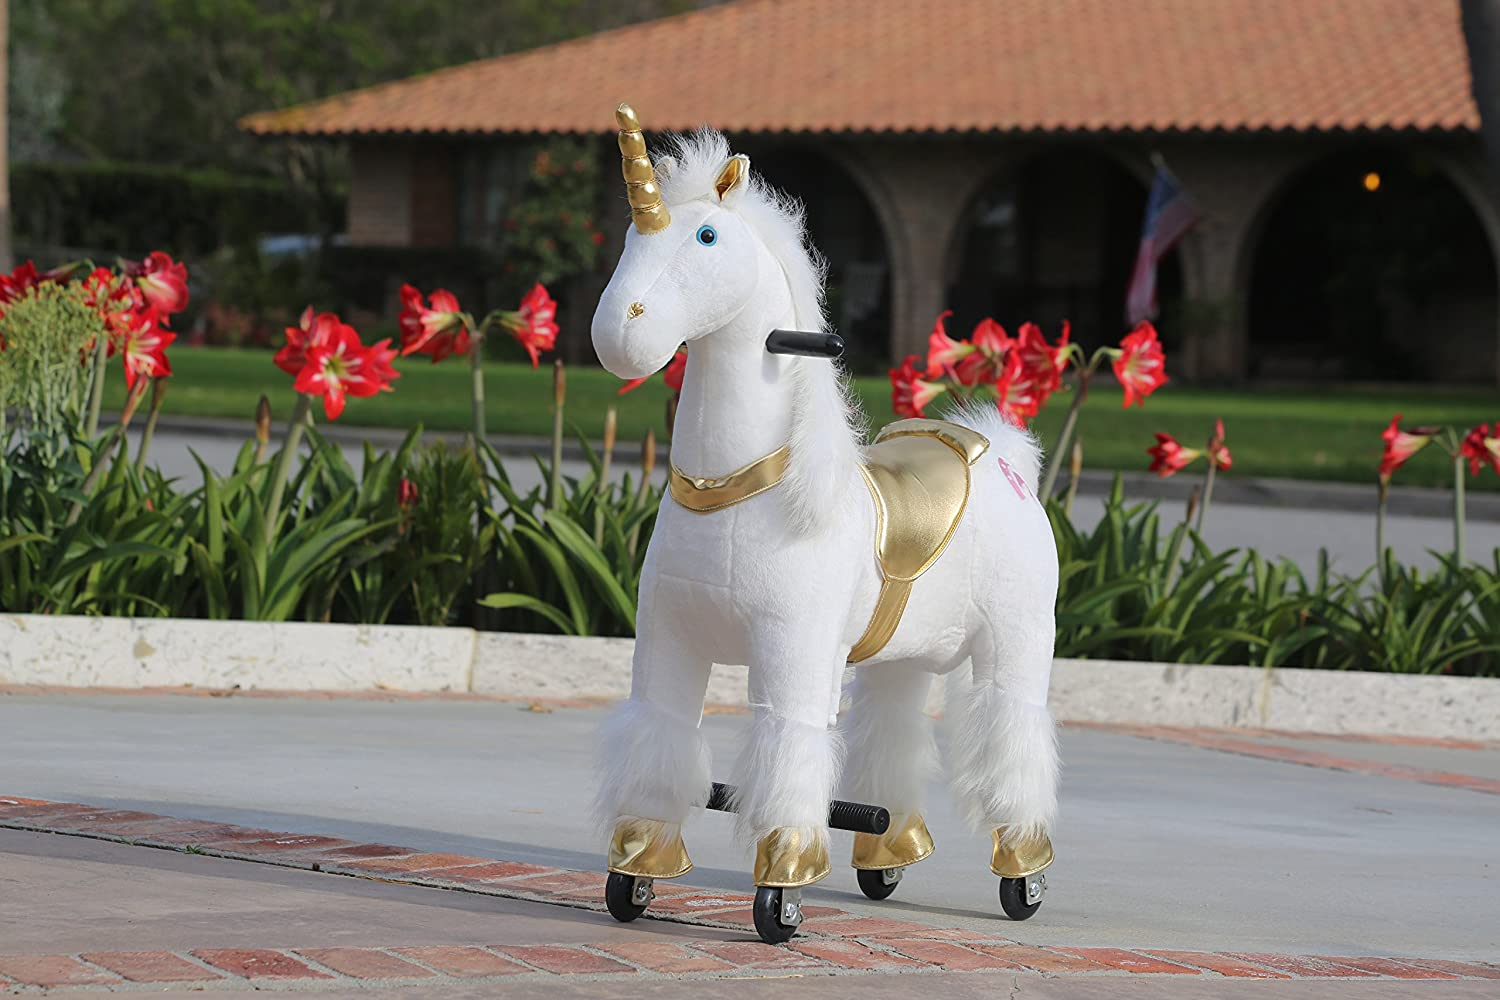 Medallion - My Pony Ride On Real Walking Horse for Children 3 to 6 Years Old or Up to 65 Pounds (Color Small Golden Unicorn)